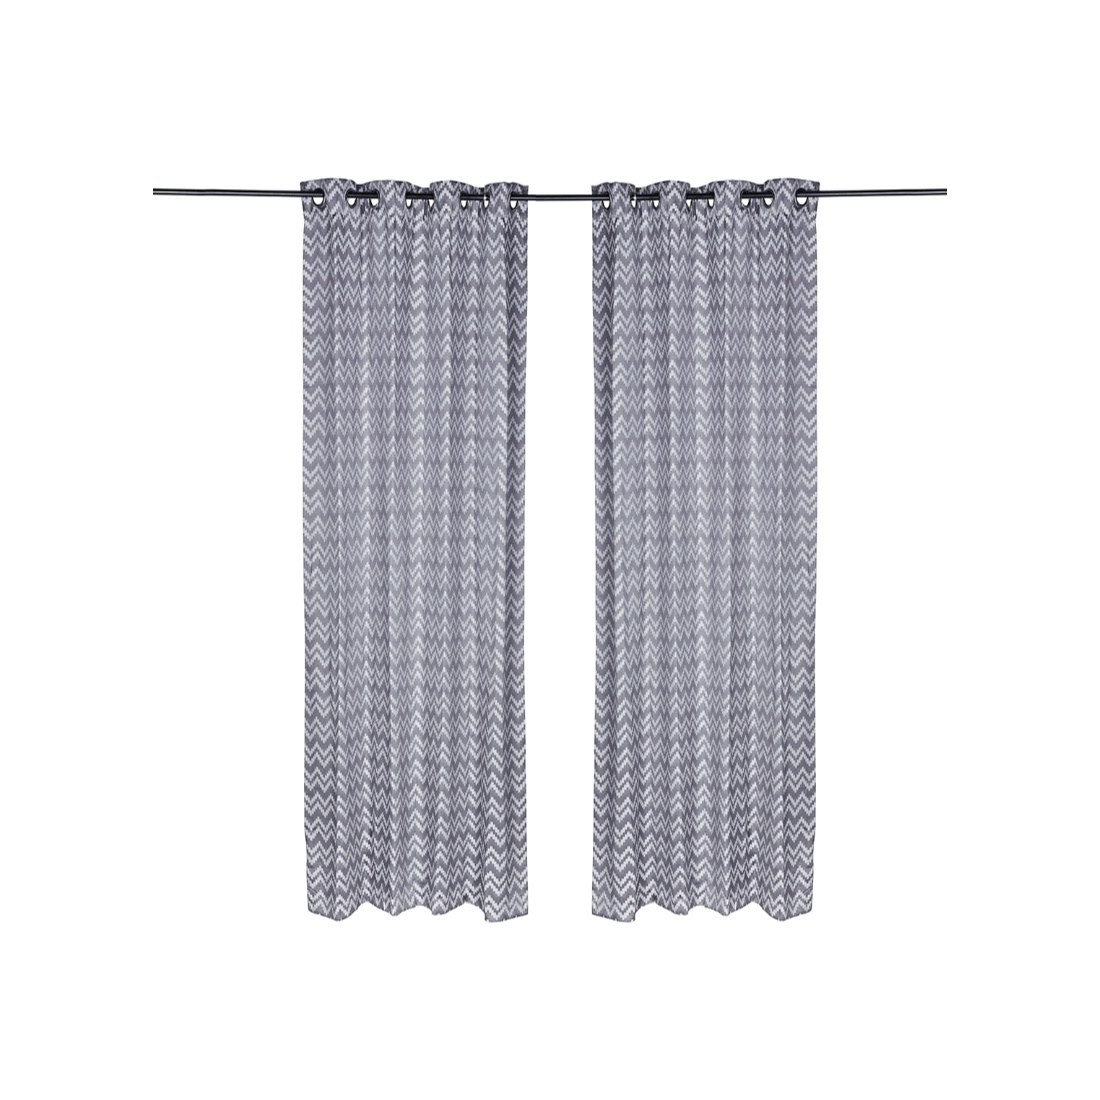 Florina Set Of 2 Curtains Polyester Door Curtains in Charcoal Colour by Living Essence